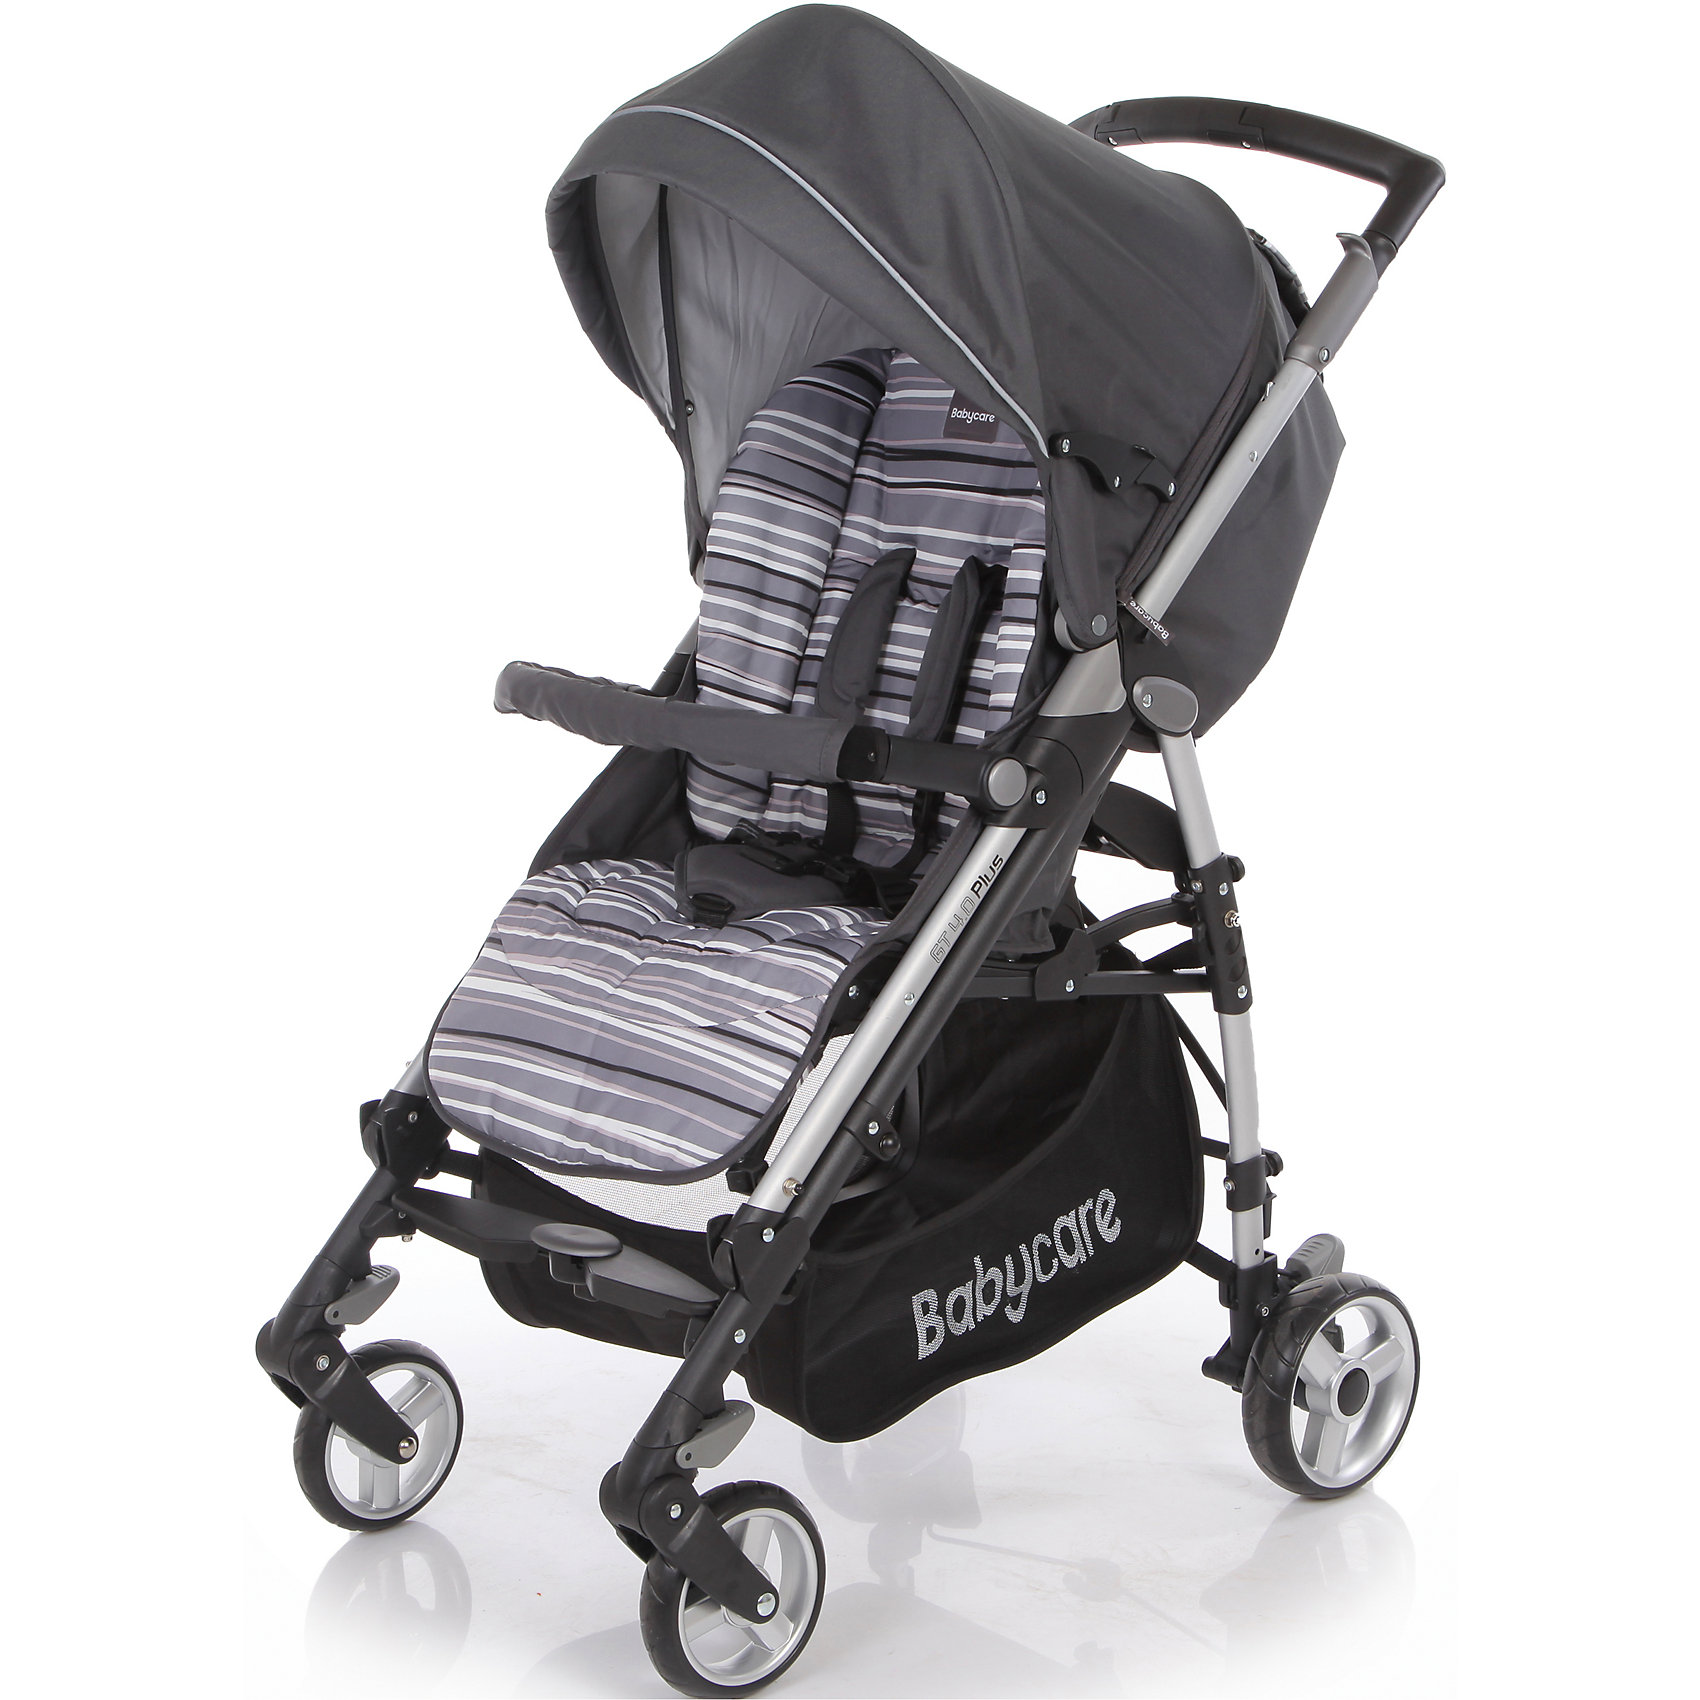 Baby Care Коляска-трость GT4 Plus Baby Care, серый прогулочная коляска cool baby kdd 6699gb t fuchsia light grey